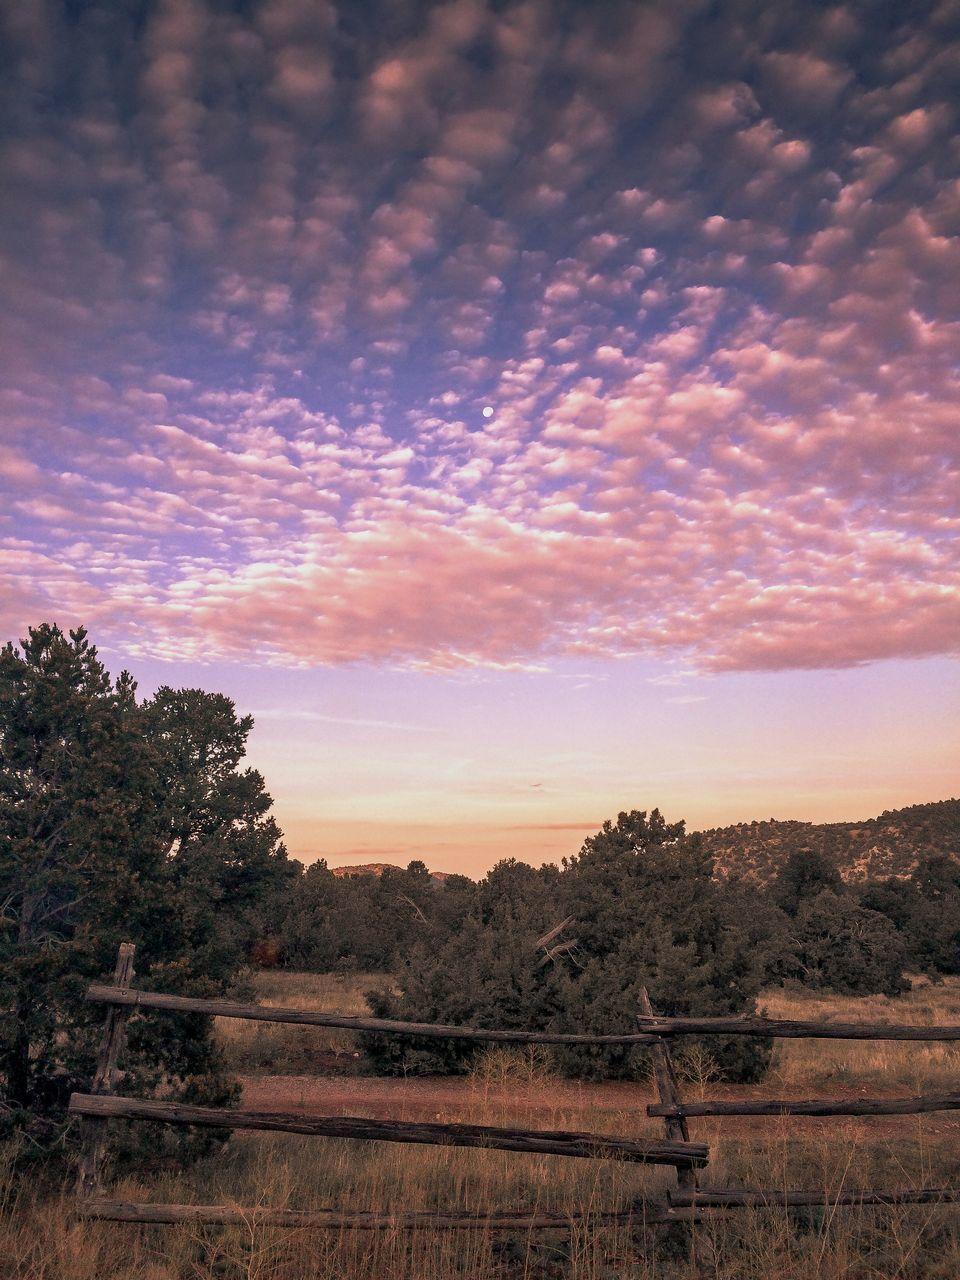 scenics, tranquility, landscape, sunset, nature, tree, tranquil scene, sky, no people, beauty in nature, outdoors, day